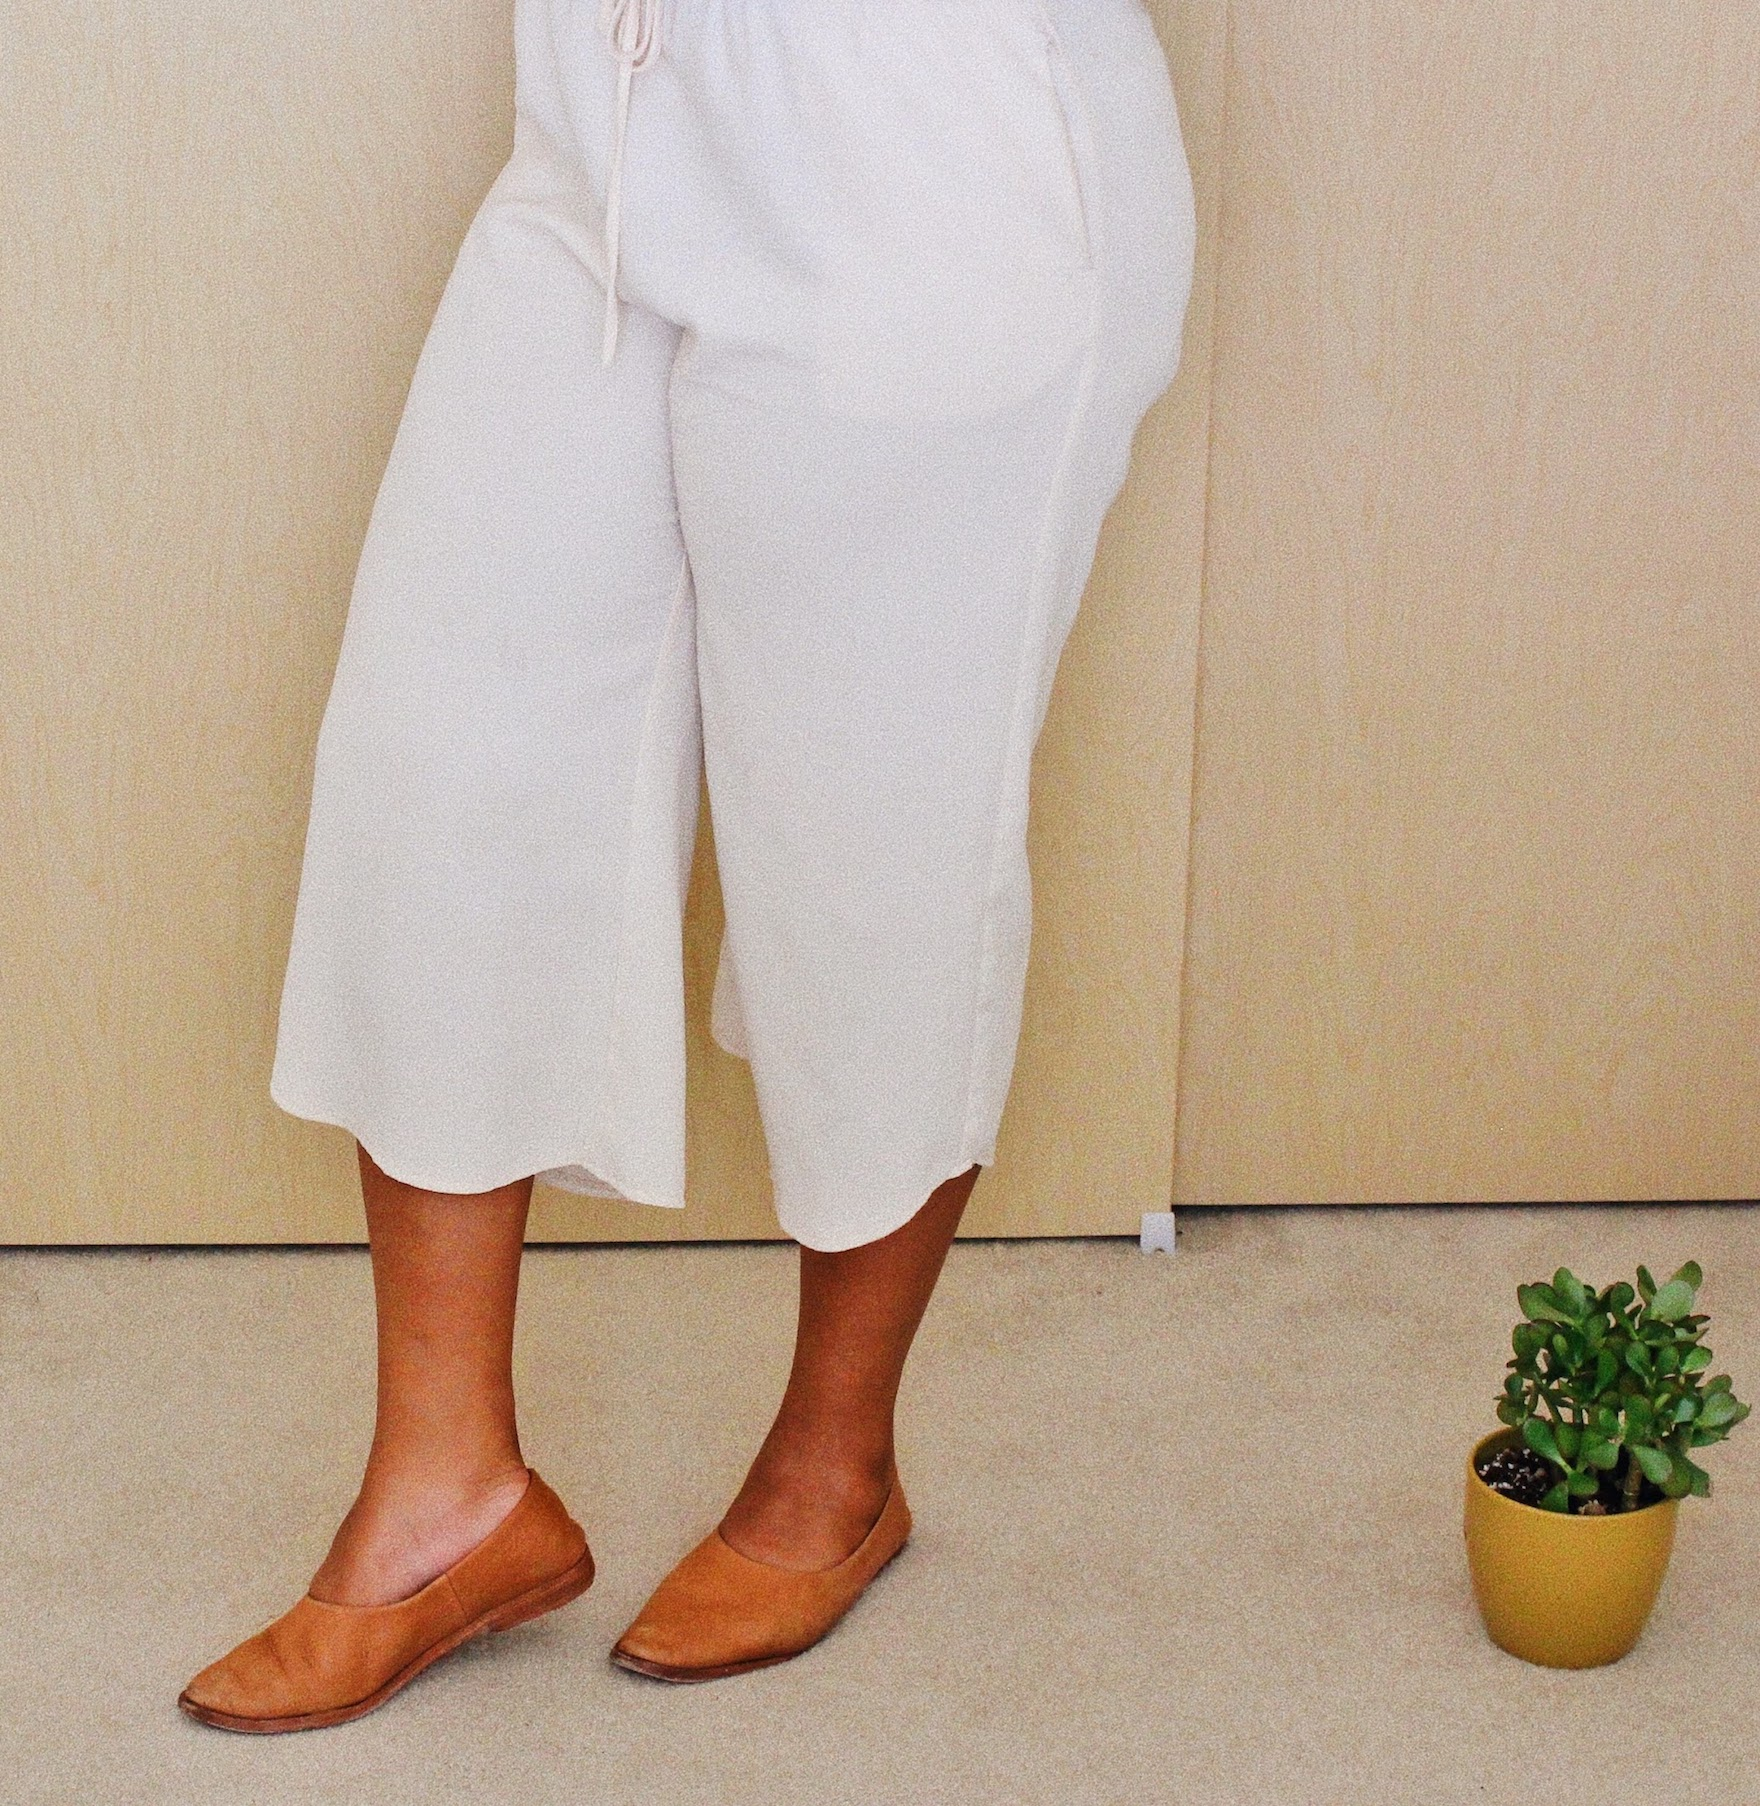 Cream culottes  // A Week Of Boho Minimalist Outfits With Deborah Shepherd From Clothed In Abundance on The Good Trade